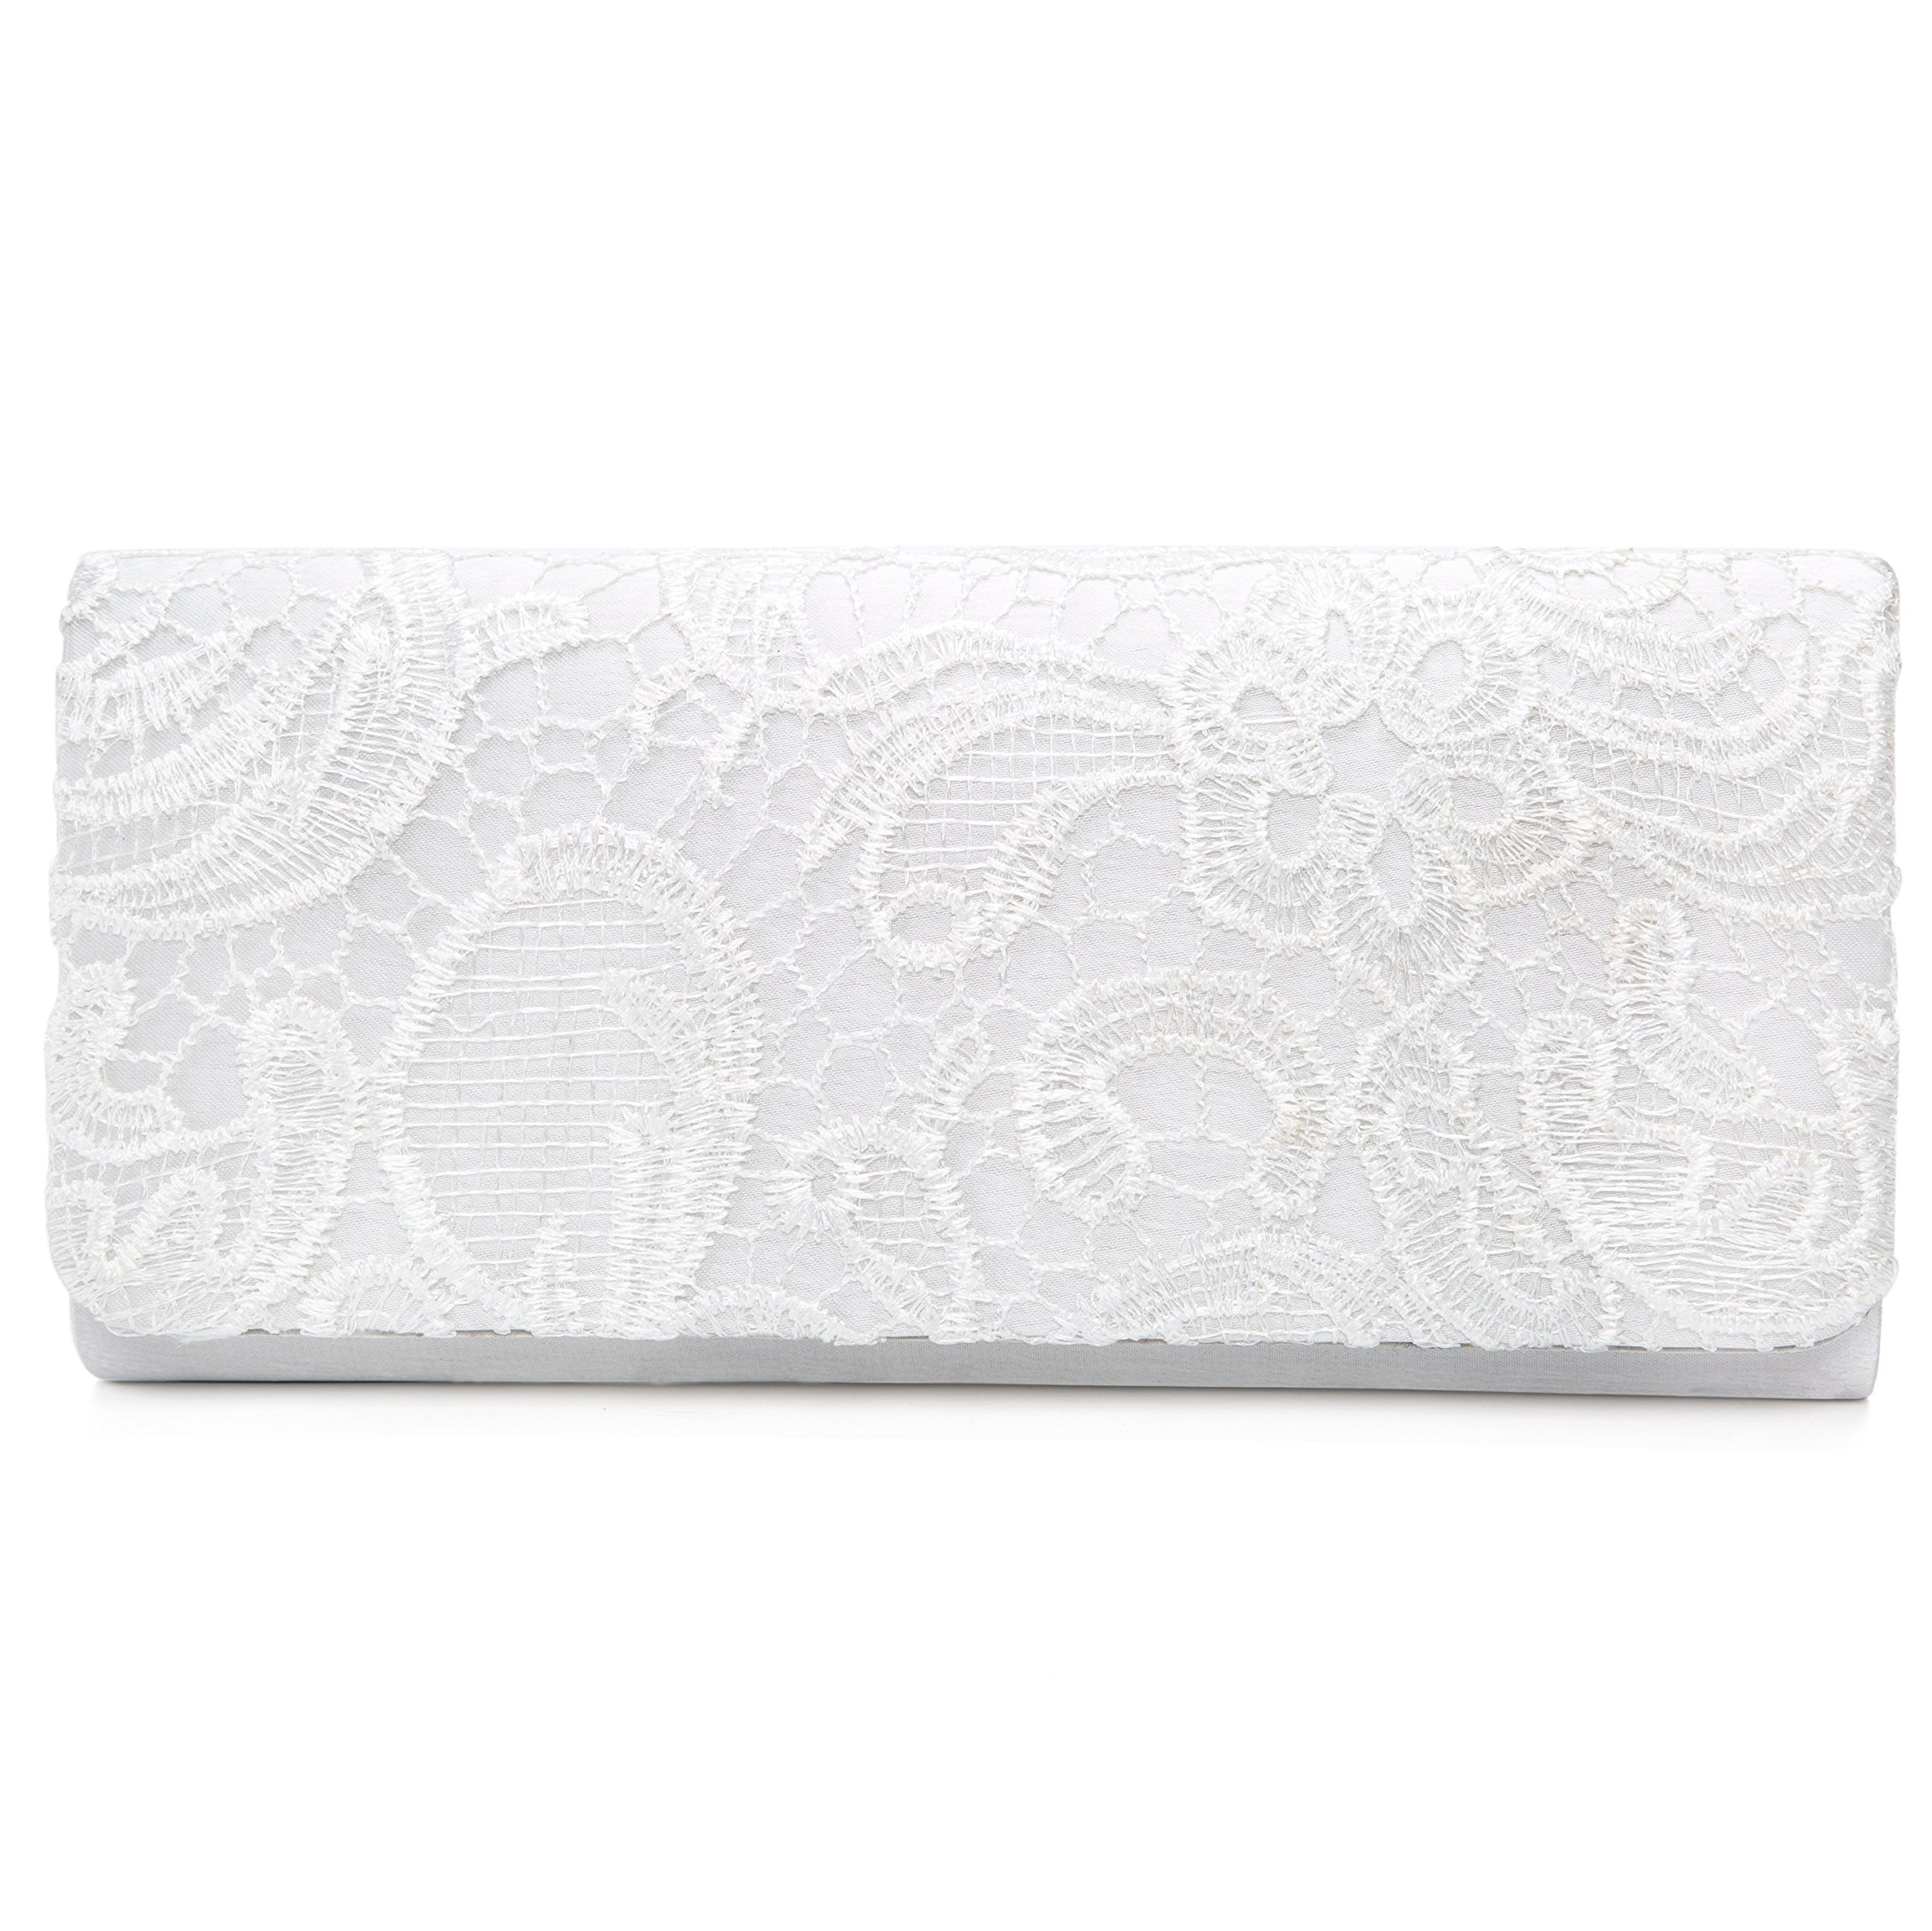 Chichitop Women's Elegant Floral Lace Evening Party Clutch Bags Bridal Wedding Purse Handbag,White by Chichitop (Image #2)